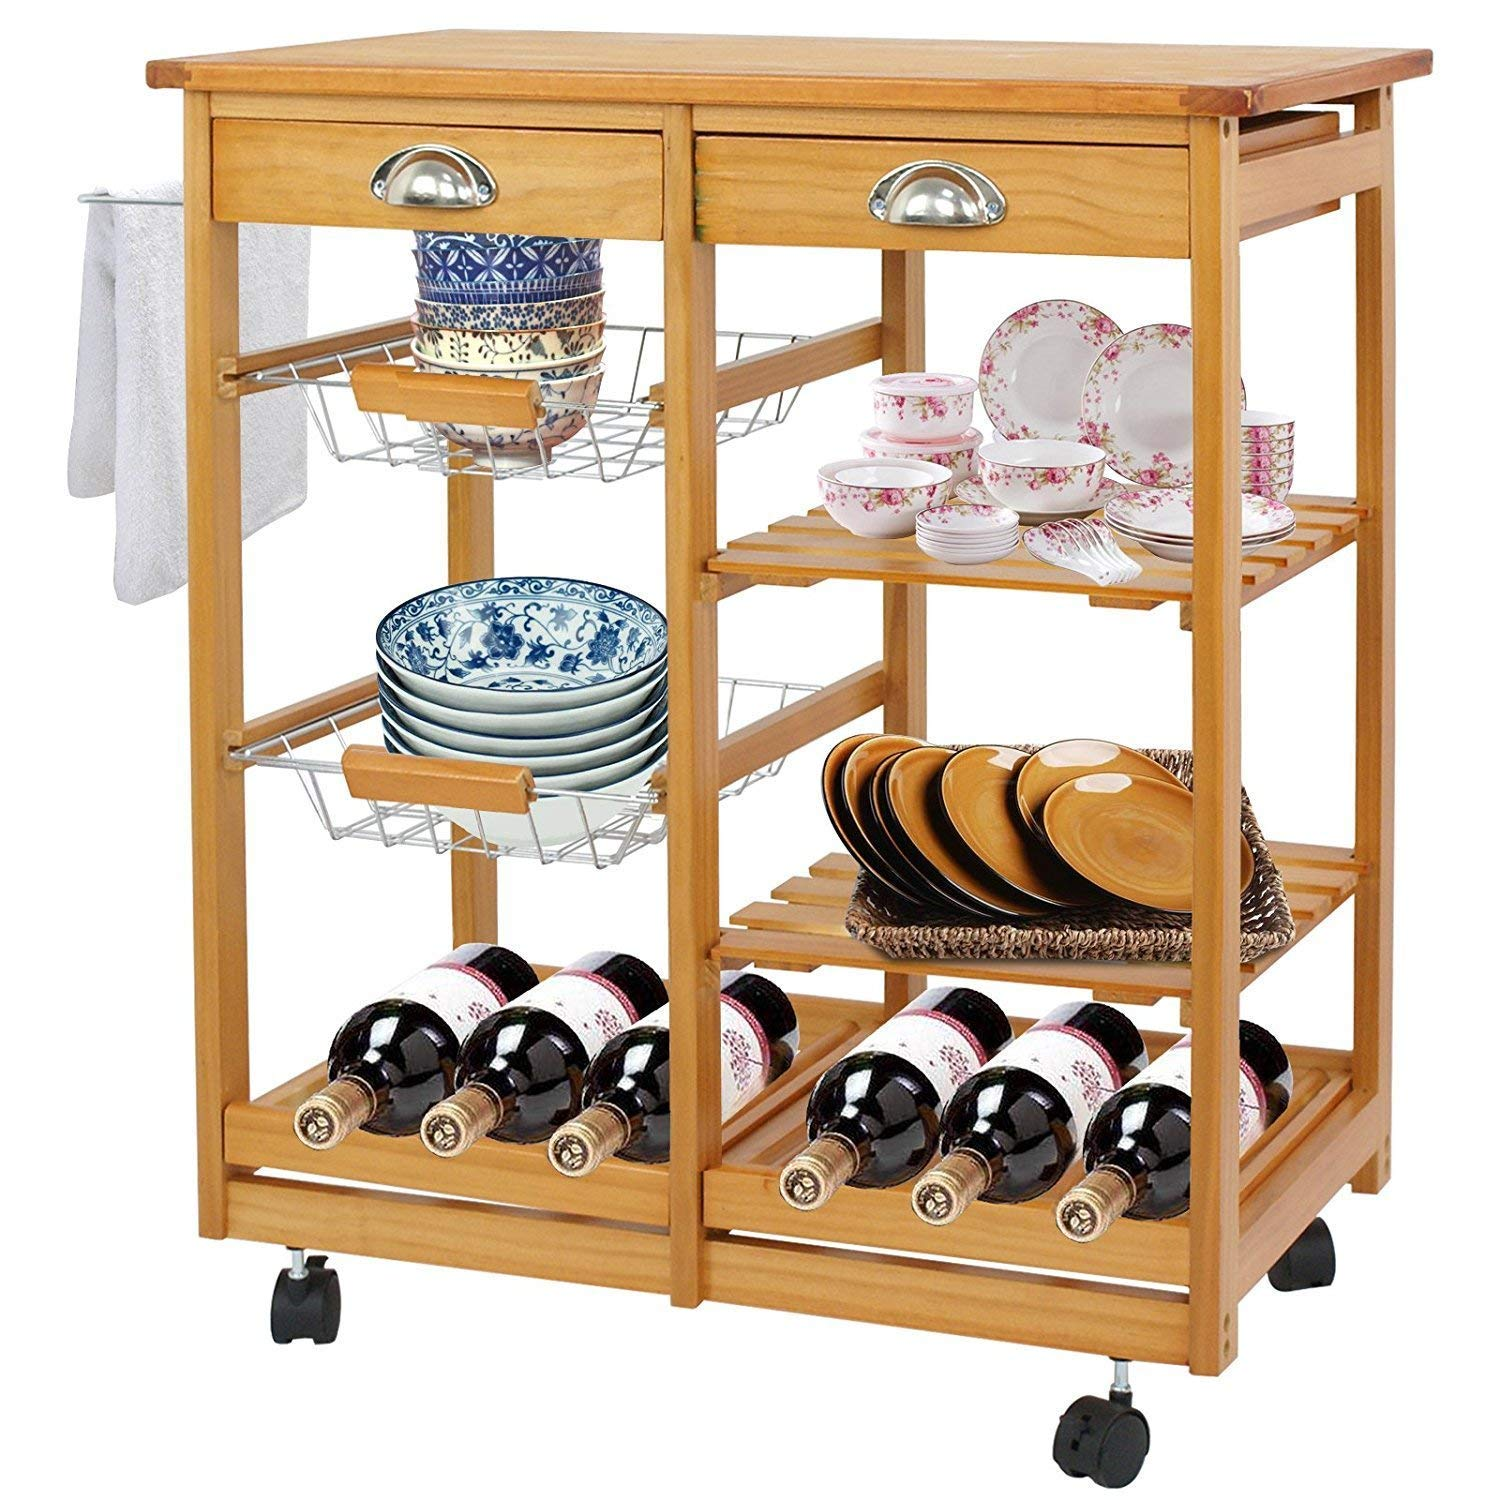 BBBuy Wooden Rolling Kitchen Storage Island Cart Dining Trolley Basket Stand Counter Top Table Microwave Cart Rack w/Drawers